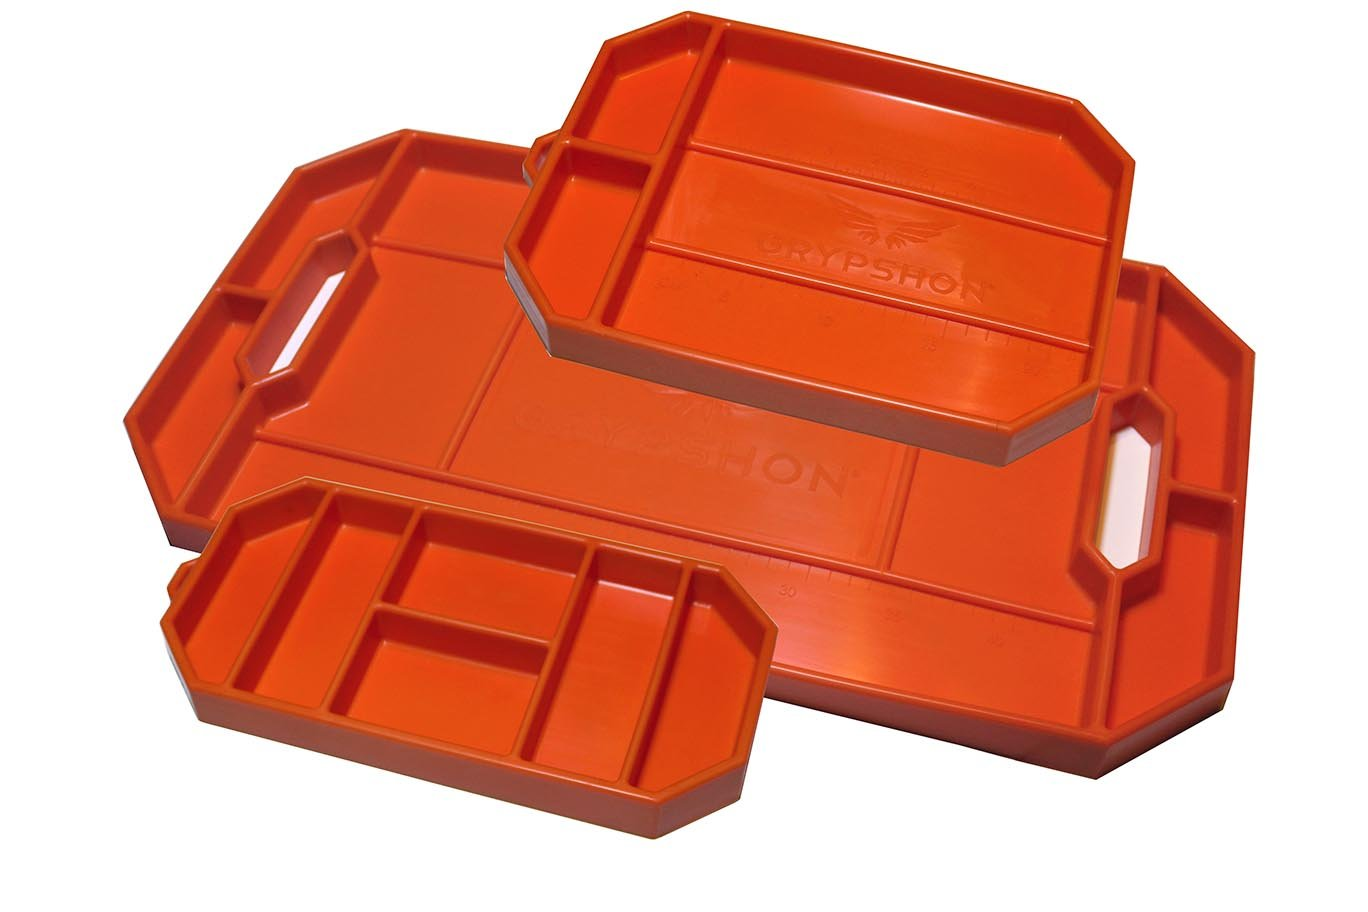 Grypmat | Non-Slip Flexible Orange Tool Tray | Tool Box Organizer | Socket Organizer | Tool Holder | Tool Mats | No Magnets | Grip Mat Tool Mat | Easy Clean Up | As Seen On Shark Tank (Trio Pack)